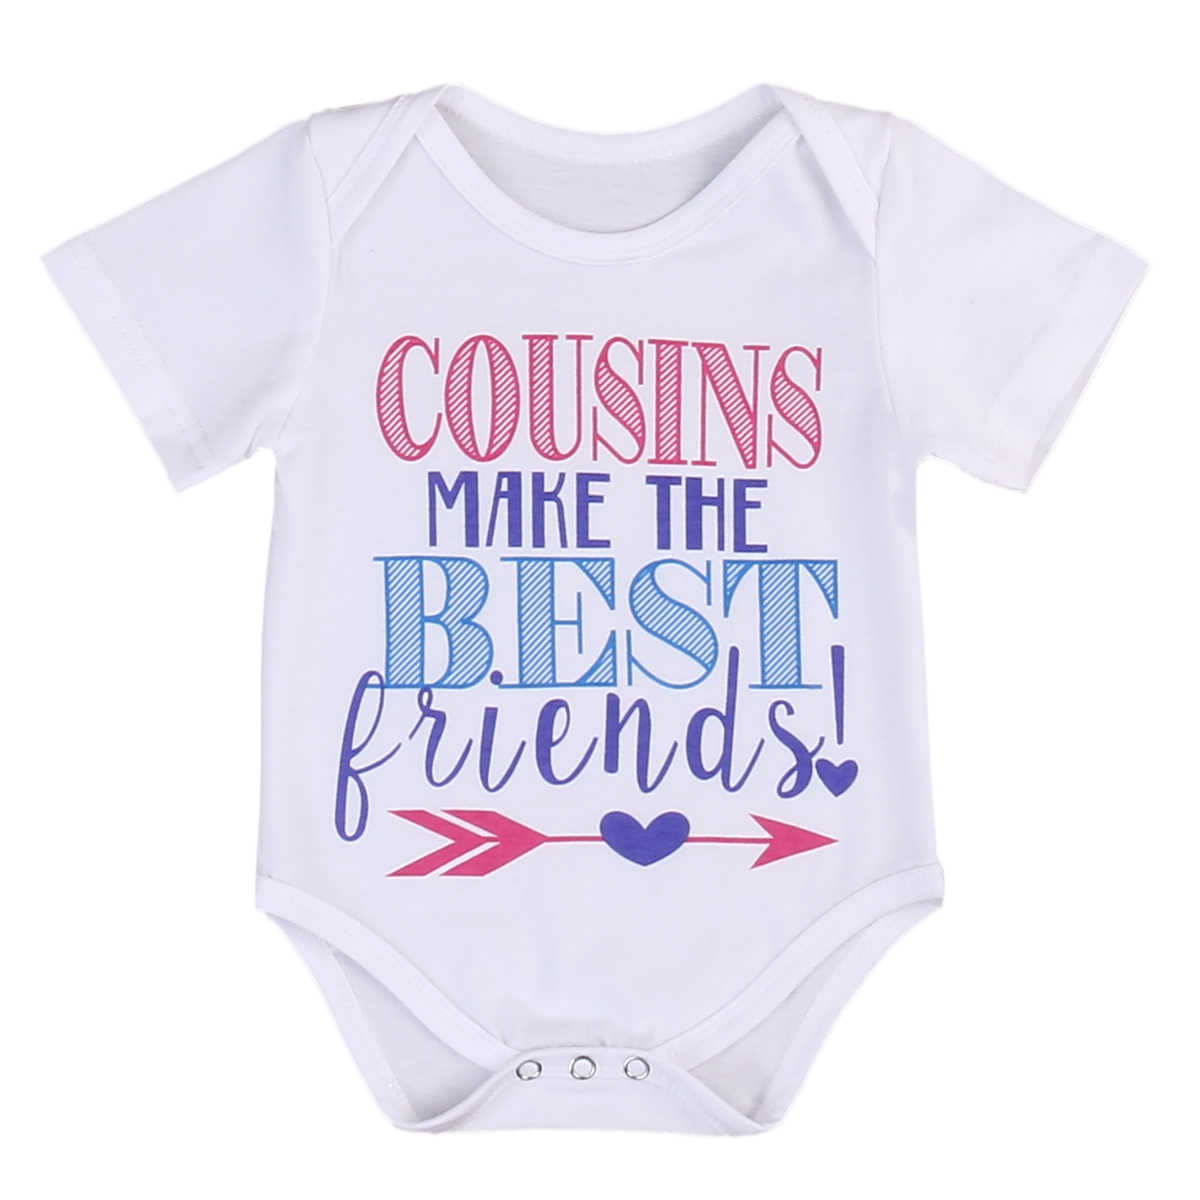 Newborn baby boy girl matching outfit brother sister t shirt word letter cousins make me